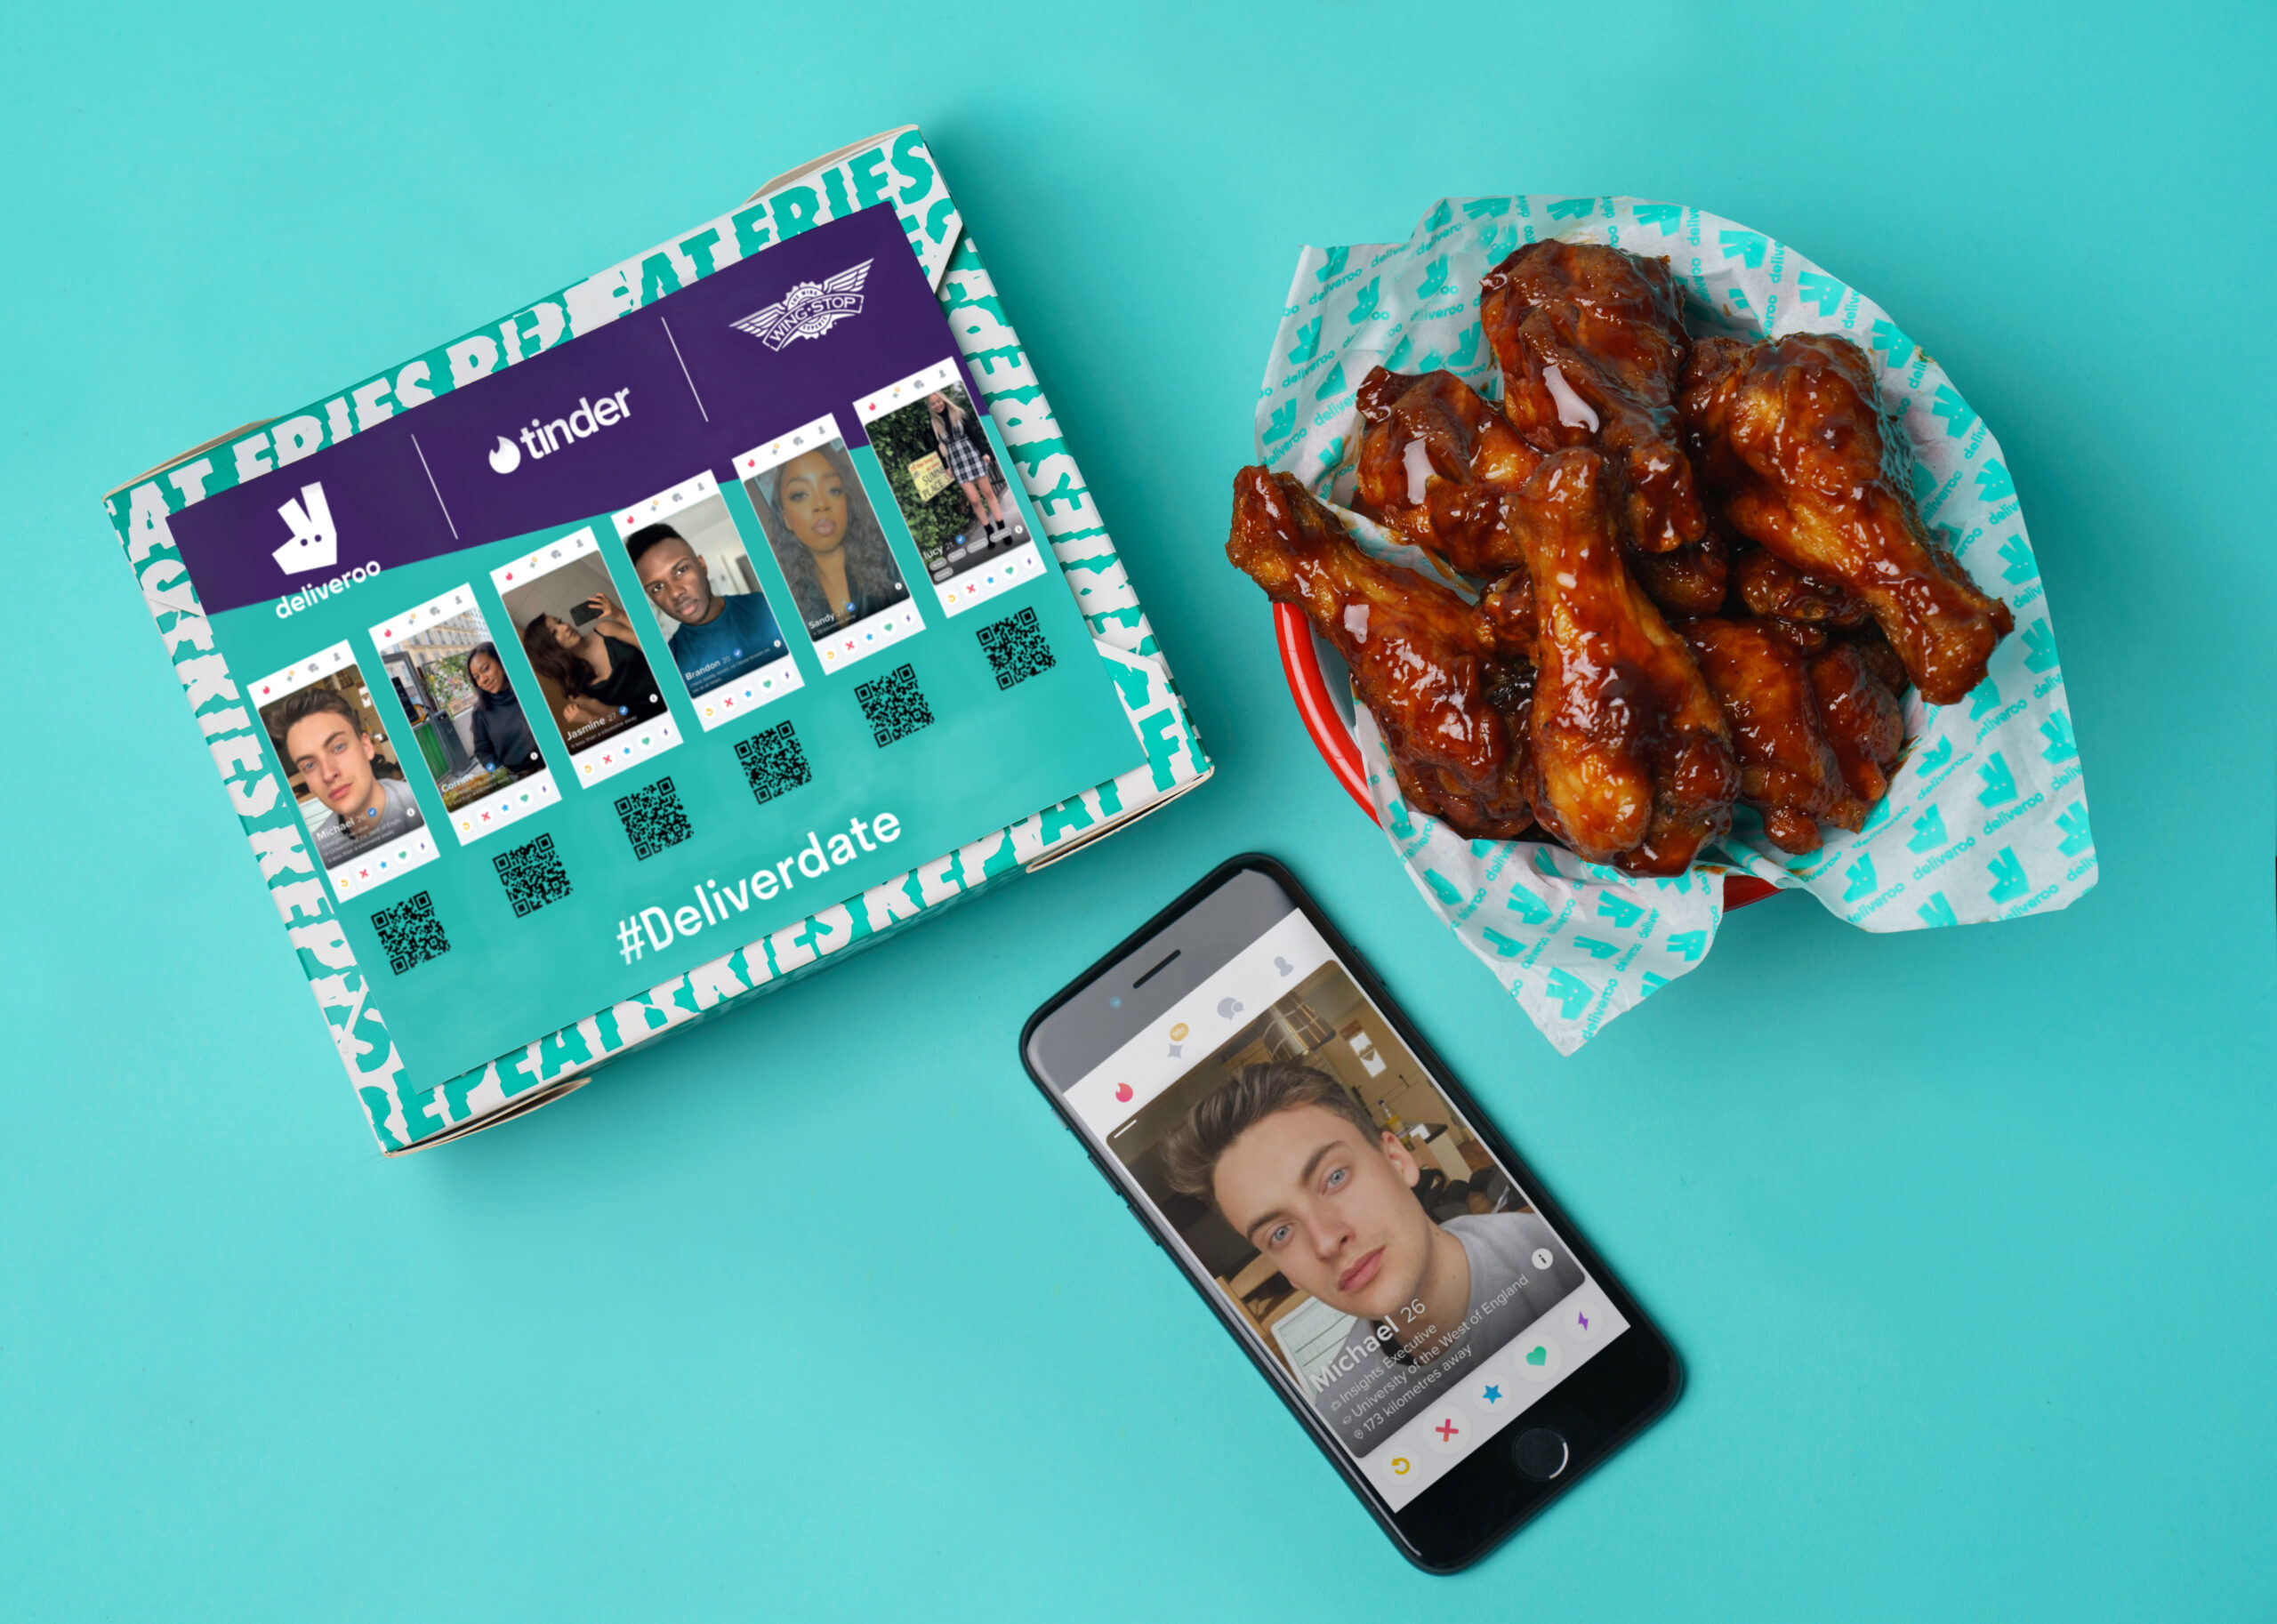 *** FREE FOR EDITORIAL USE *** Love at 'first bite' for single Brits this Valentine's as Deliveroo, Tinder and Wingstop partner to launch 'DeliverDate' service to wingman the nation.